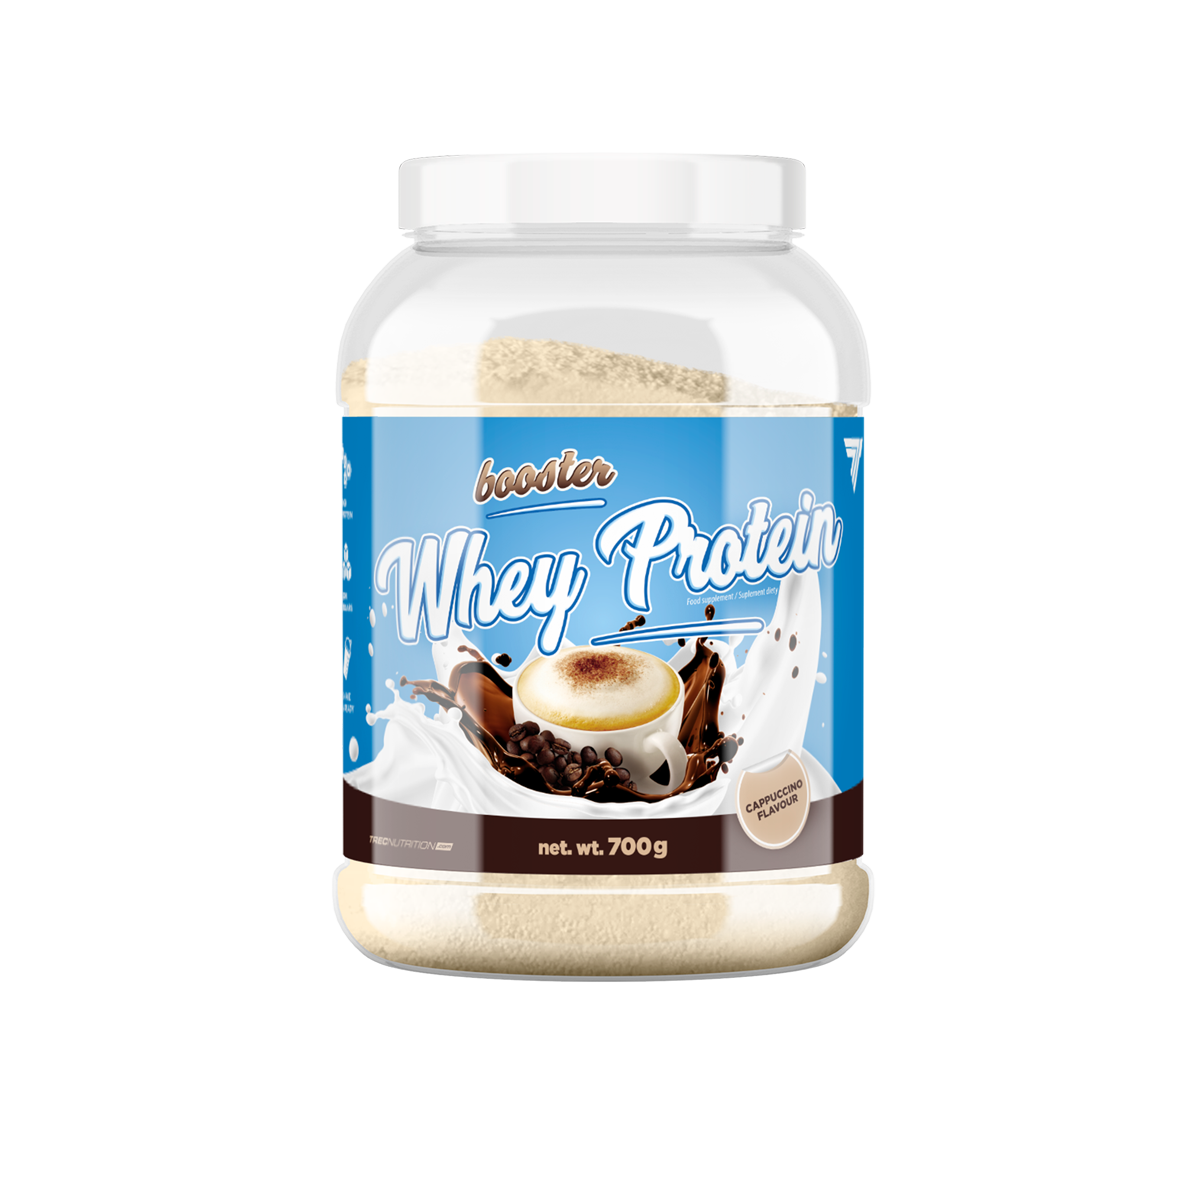 BOOSTER-WHEY-PROTEIN_700g_cappuccino